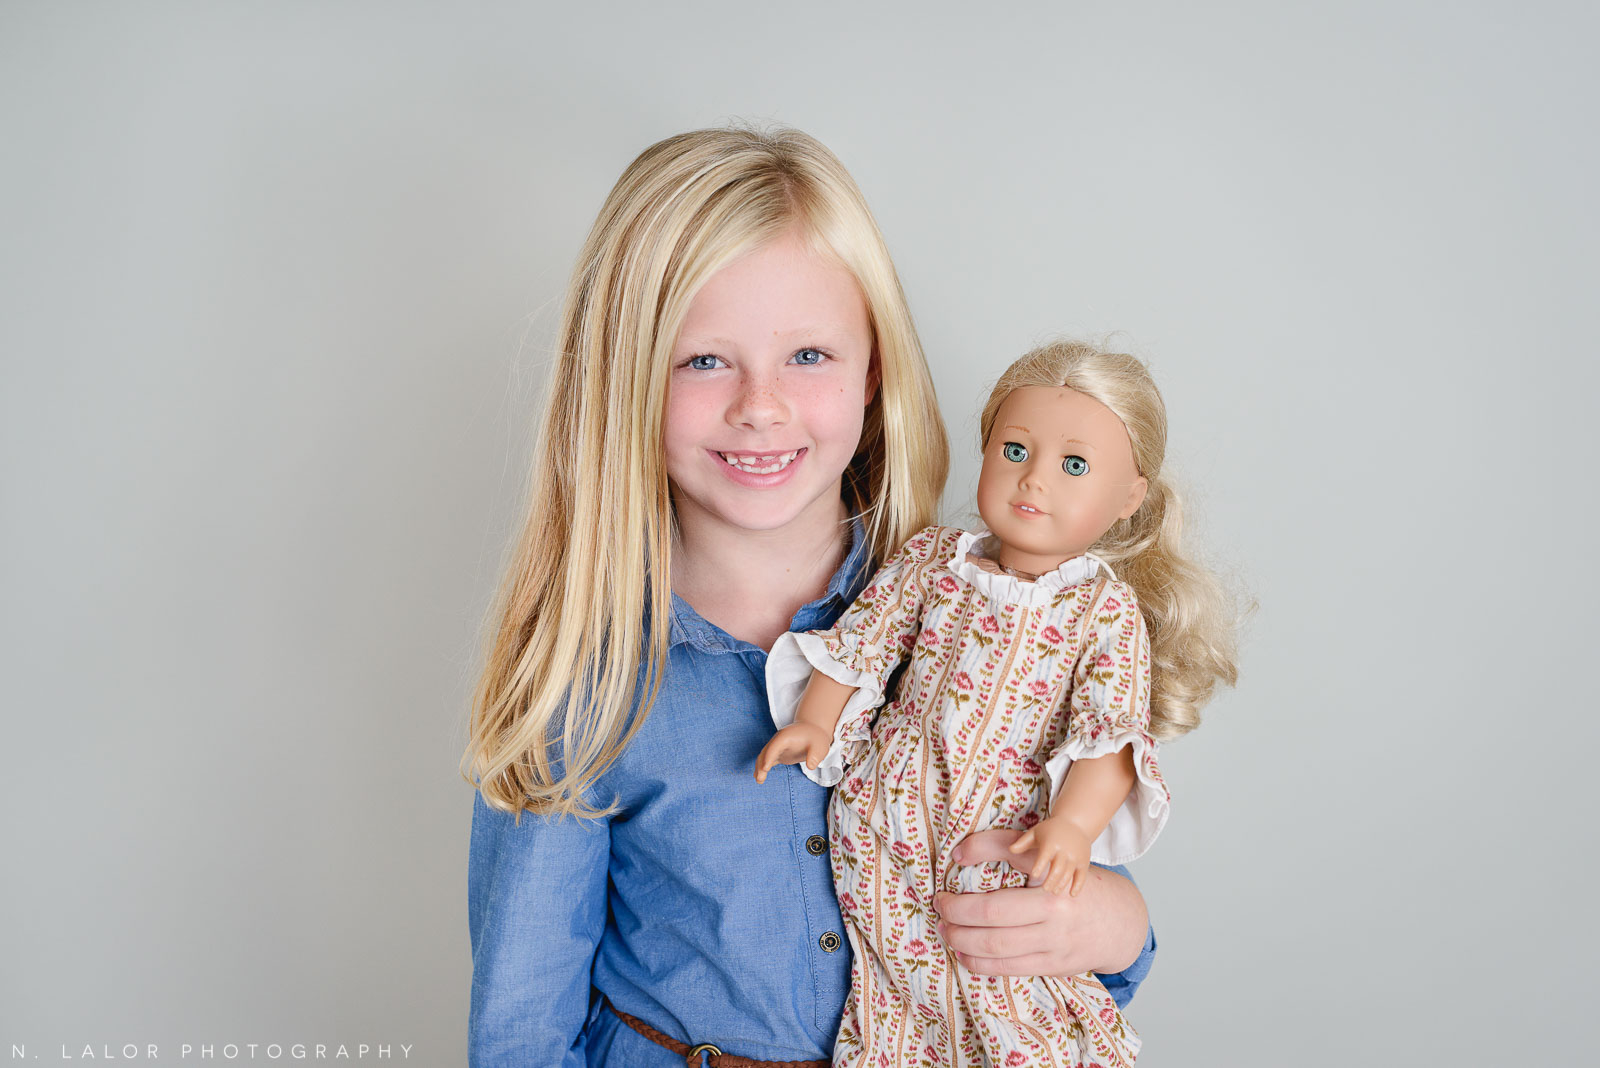 American girl doll love. Studio photoshoot with N. Lalor Photography in Greenwich, Connecticut.